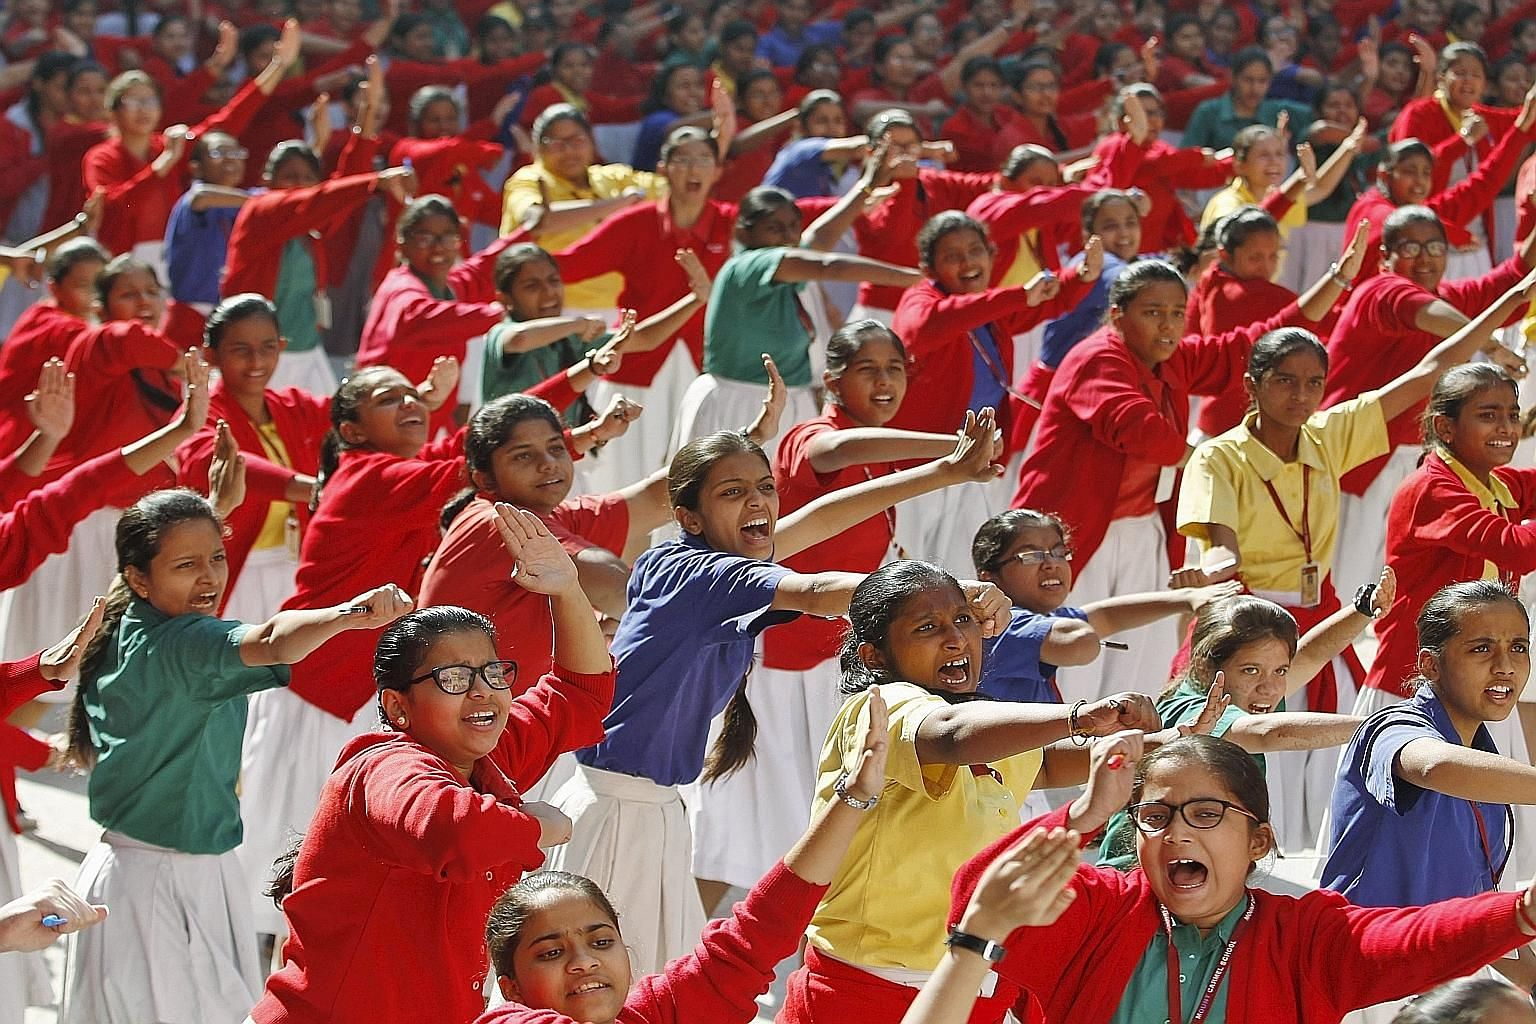 Schoolgirls practising martial arts during an event in Ahmedabad, India, on Wednesday to mark the third anniversary of the fatal gang rape of a woman on a Delhi bus in December 2012.